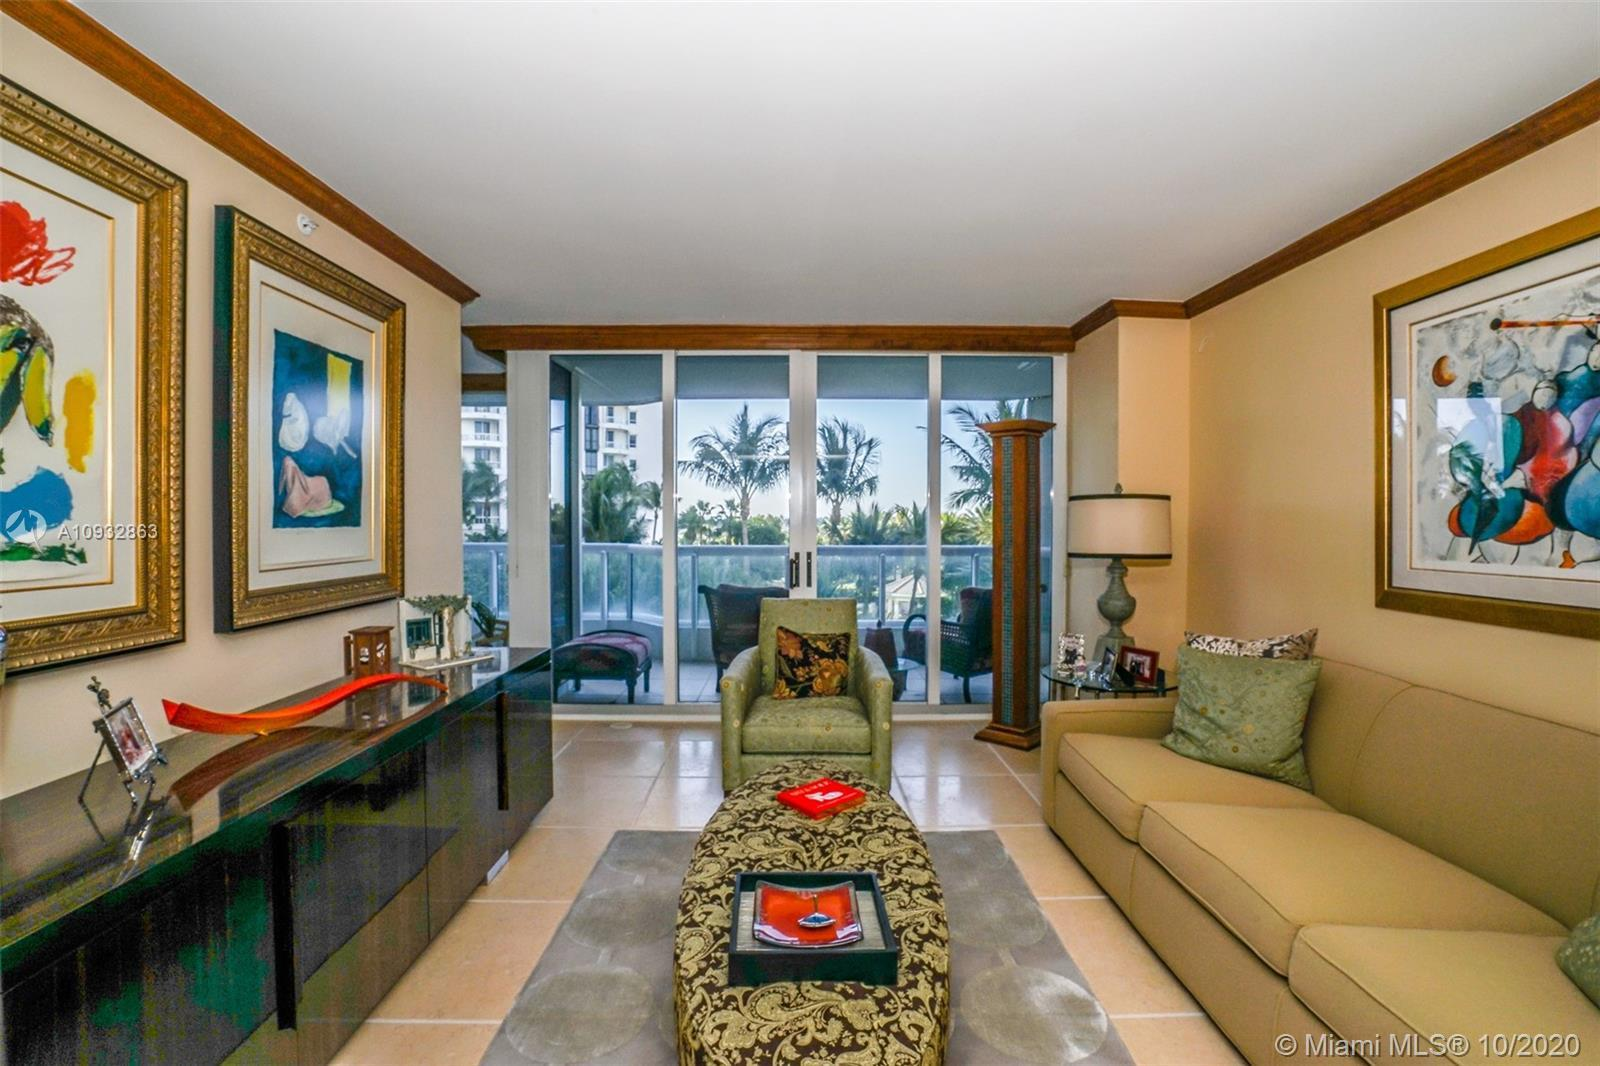 LOCATED AT THE SOUTH TOWER AT THE POINT IN AVENTURA THIS UNIT SPEAKS QUALITY, WELL TAKEN CARE OF AND